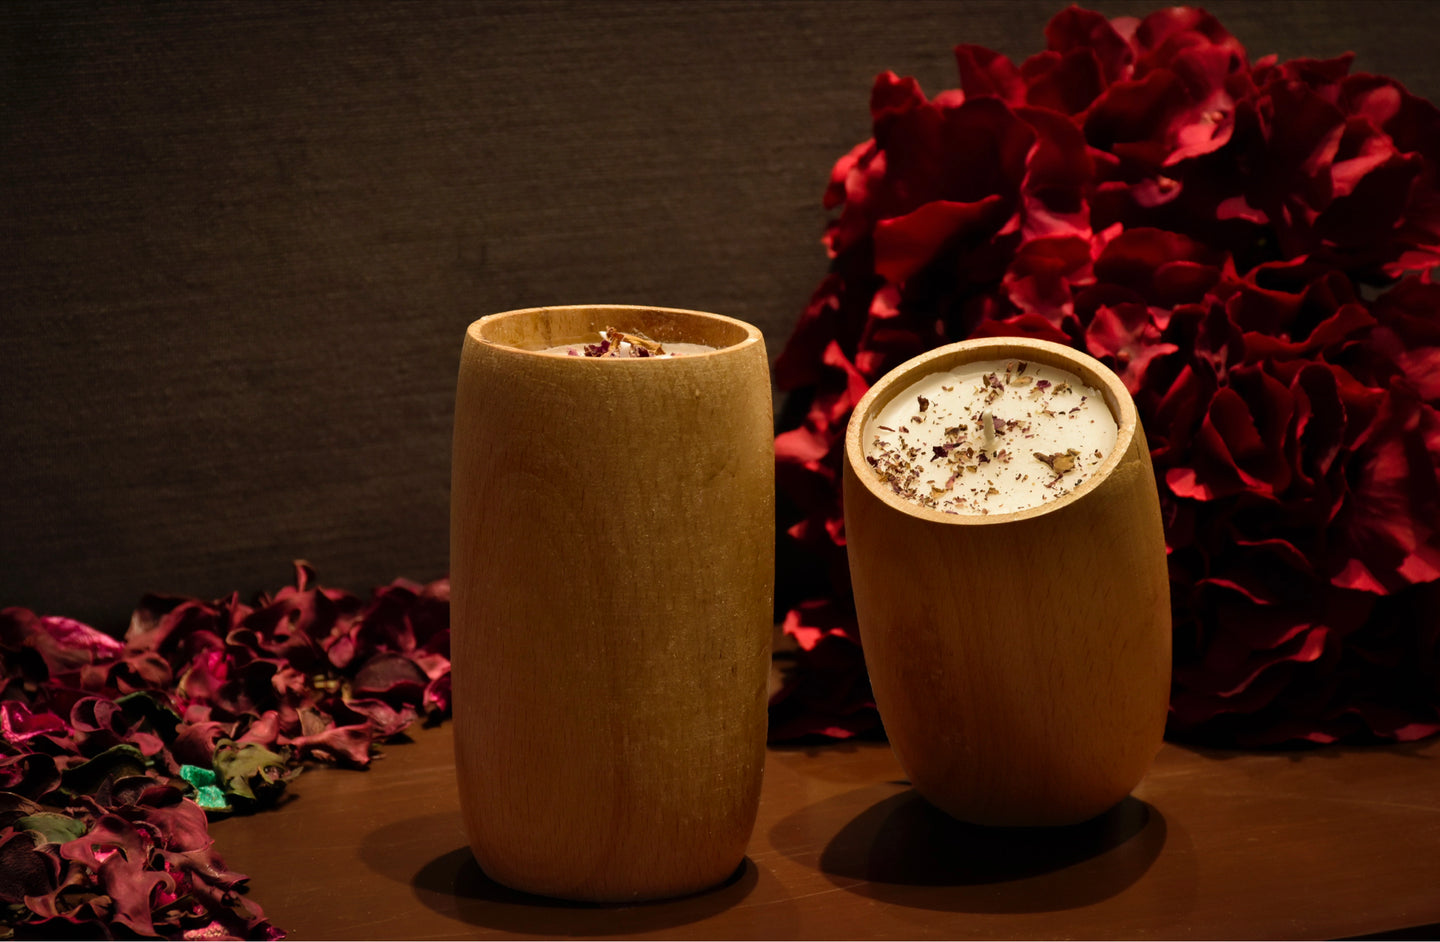 With the goodness of rose petals shining through the scent, these candles are handmade with love and are delightful to the senses.